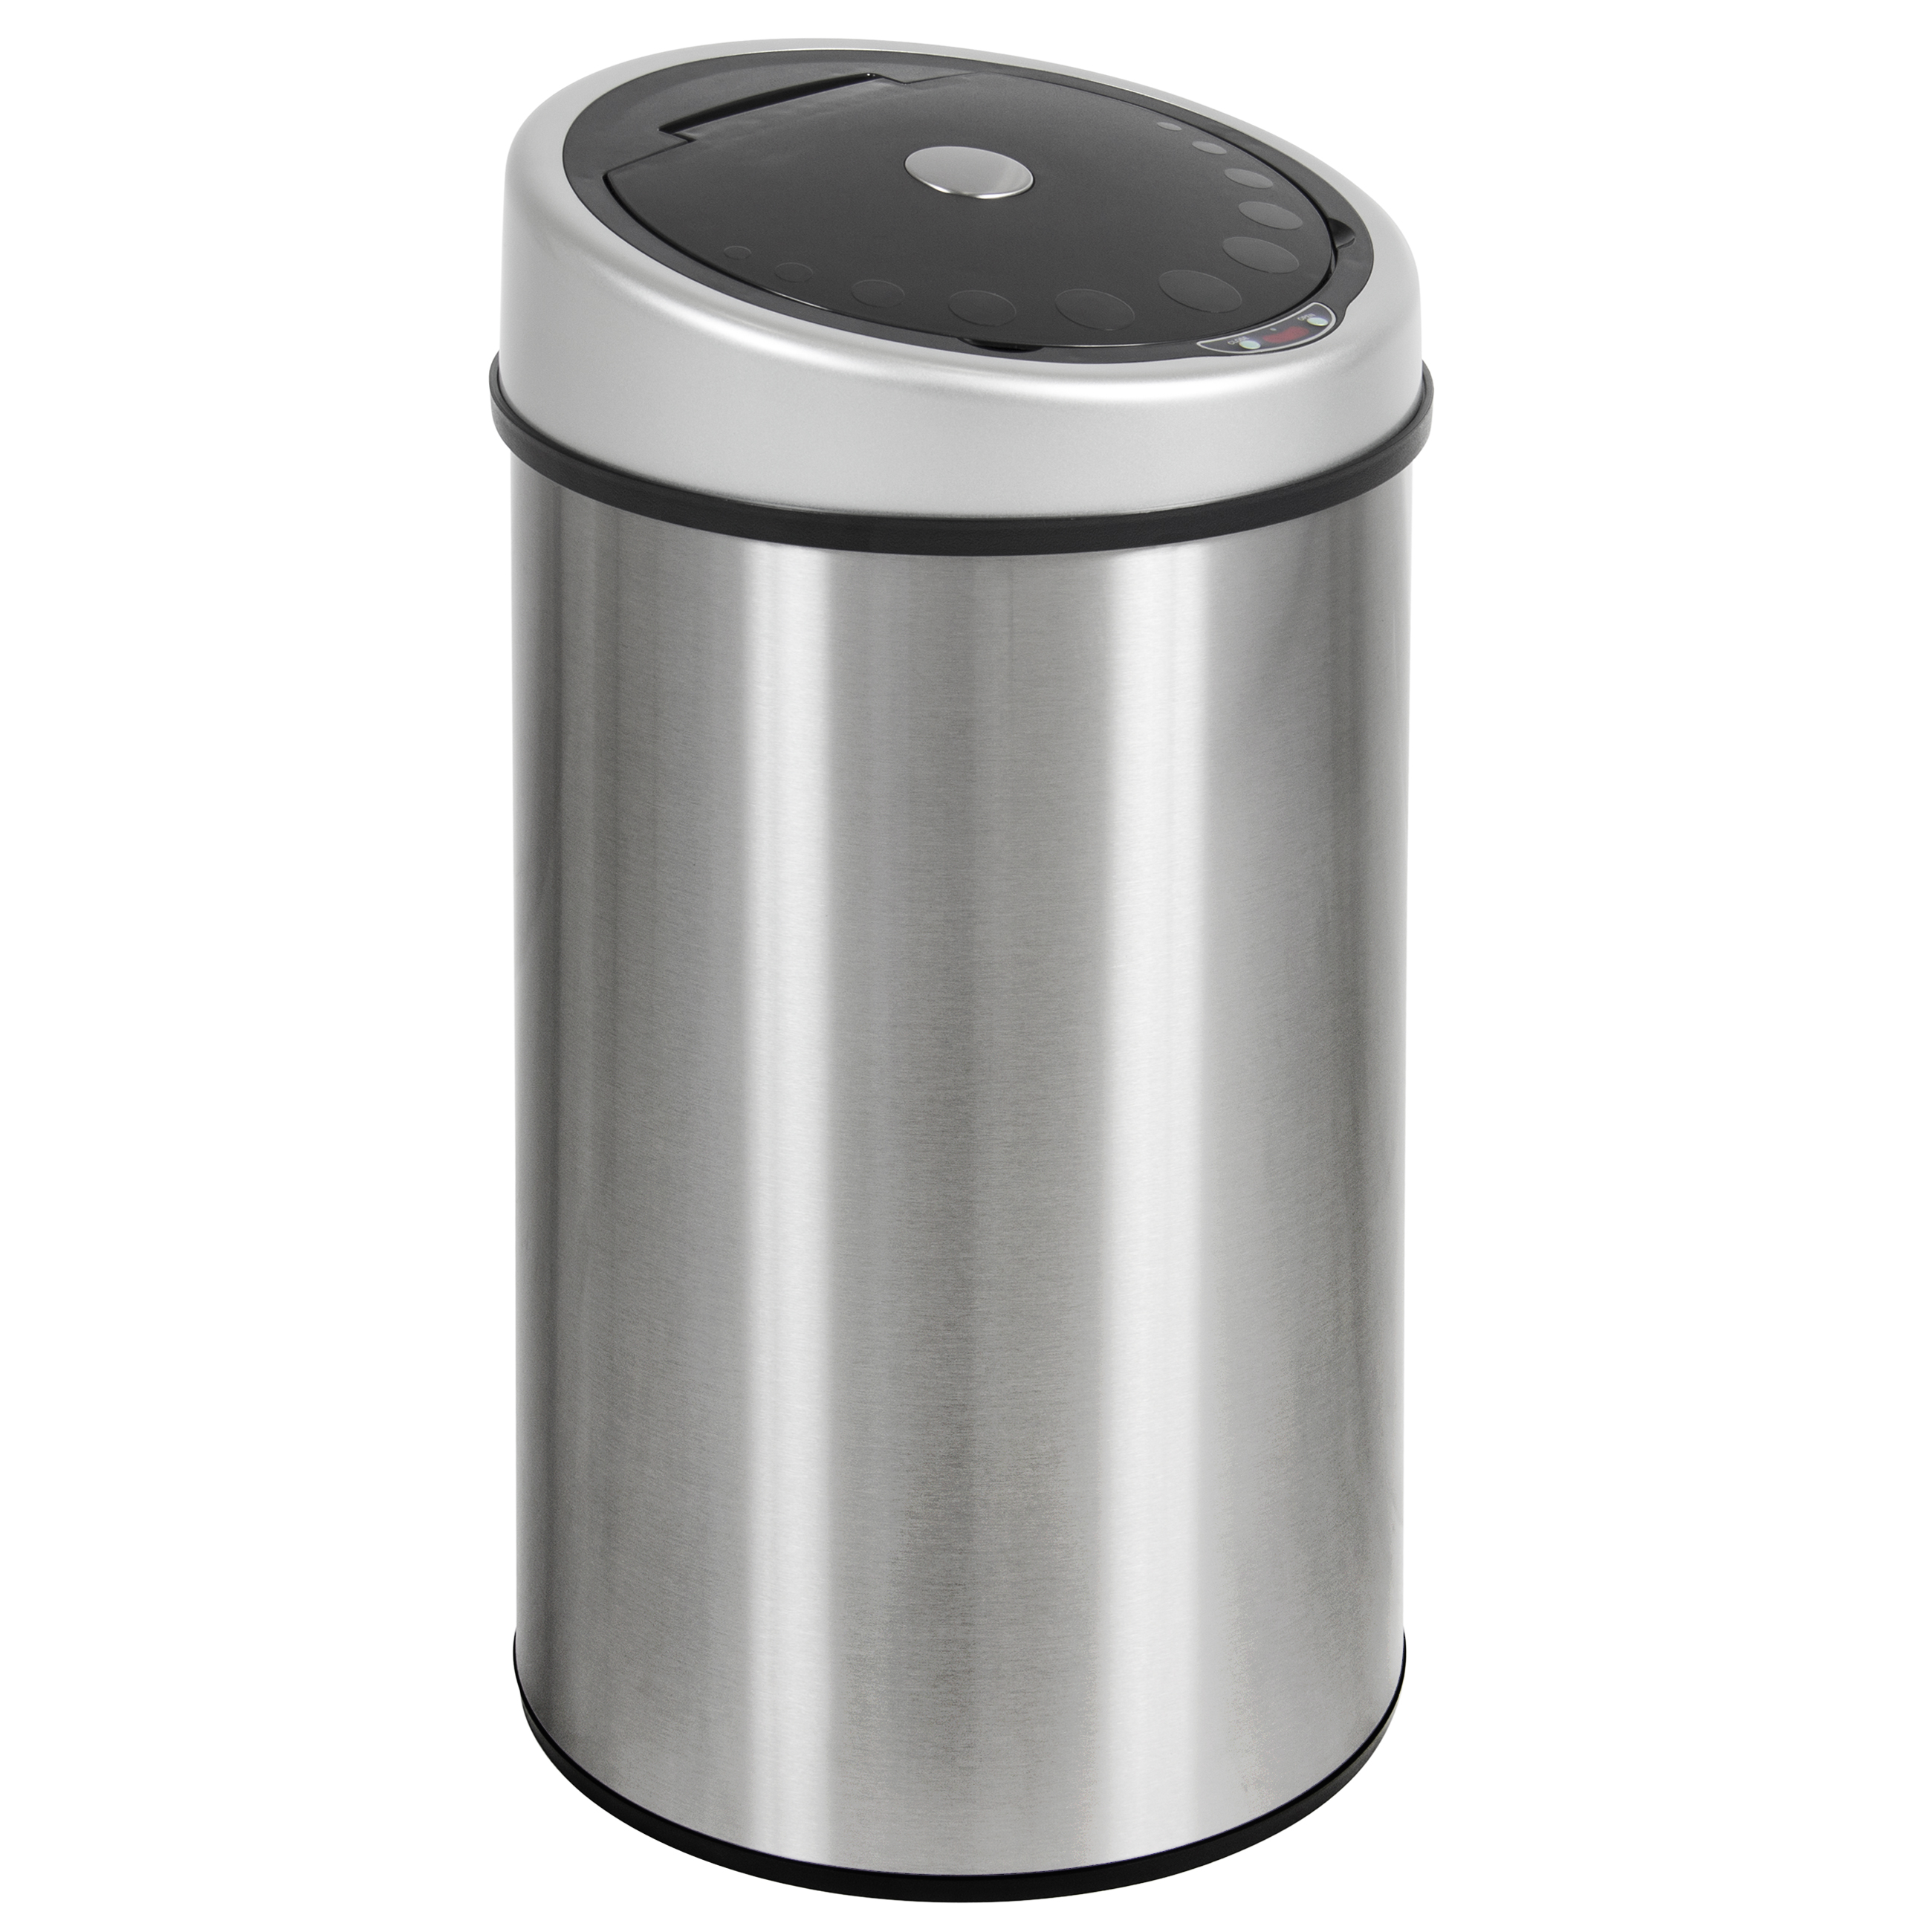 Automatic Touchless Trash Can Stainless Steel Infrared sensor dust bin 13.2 Gal by